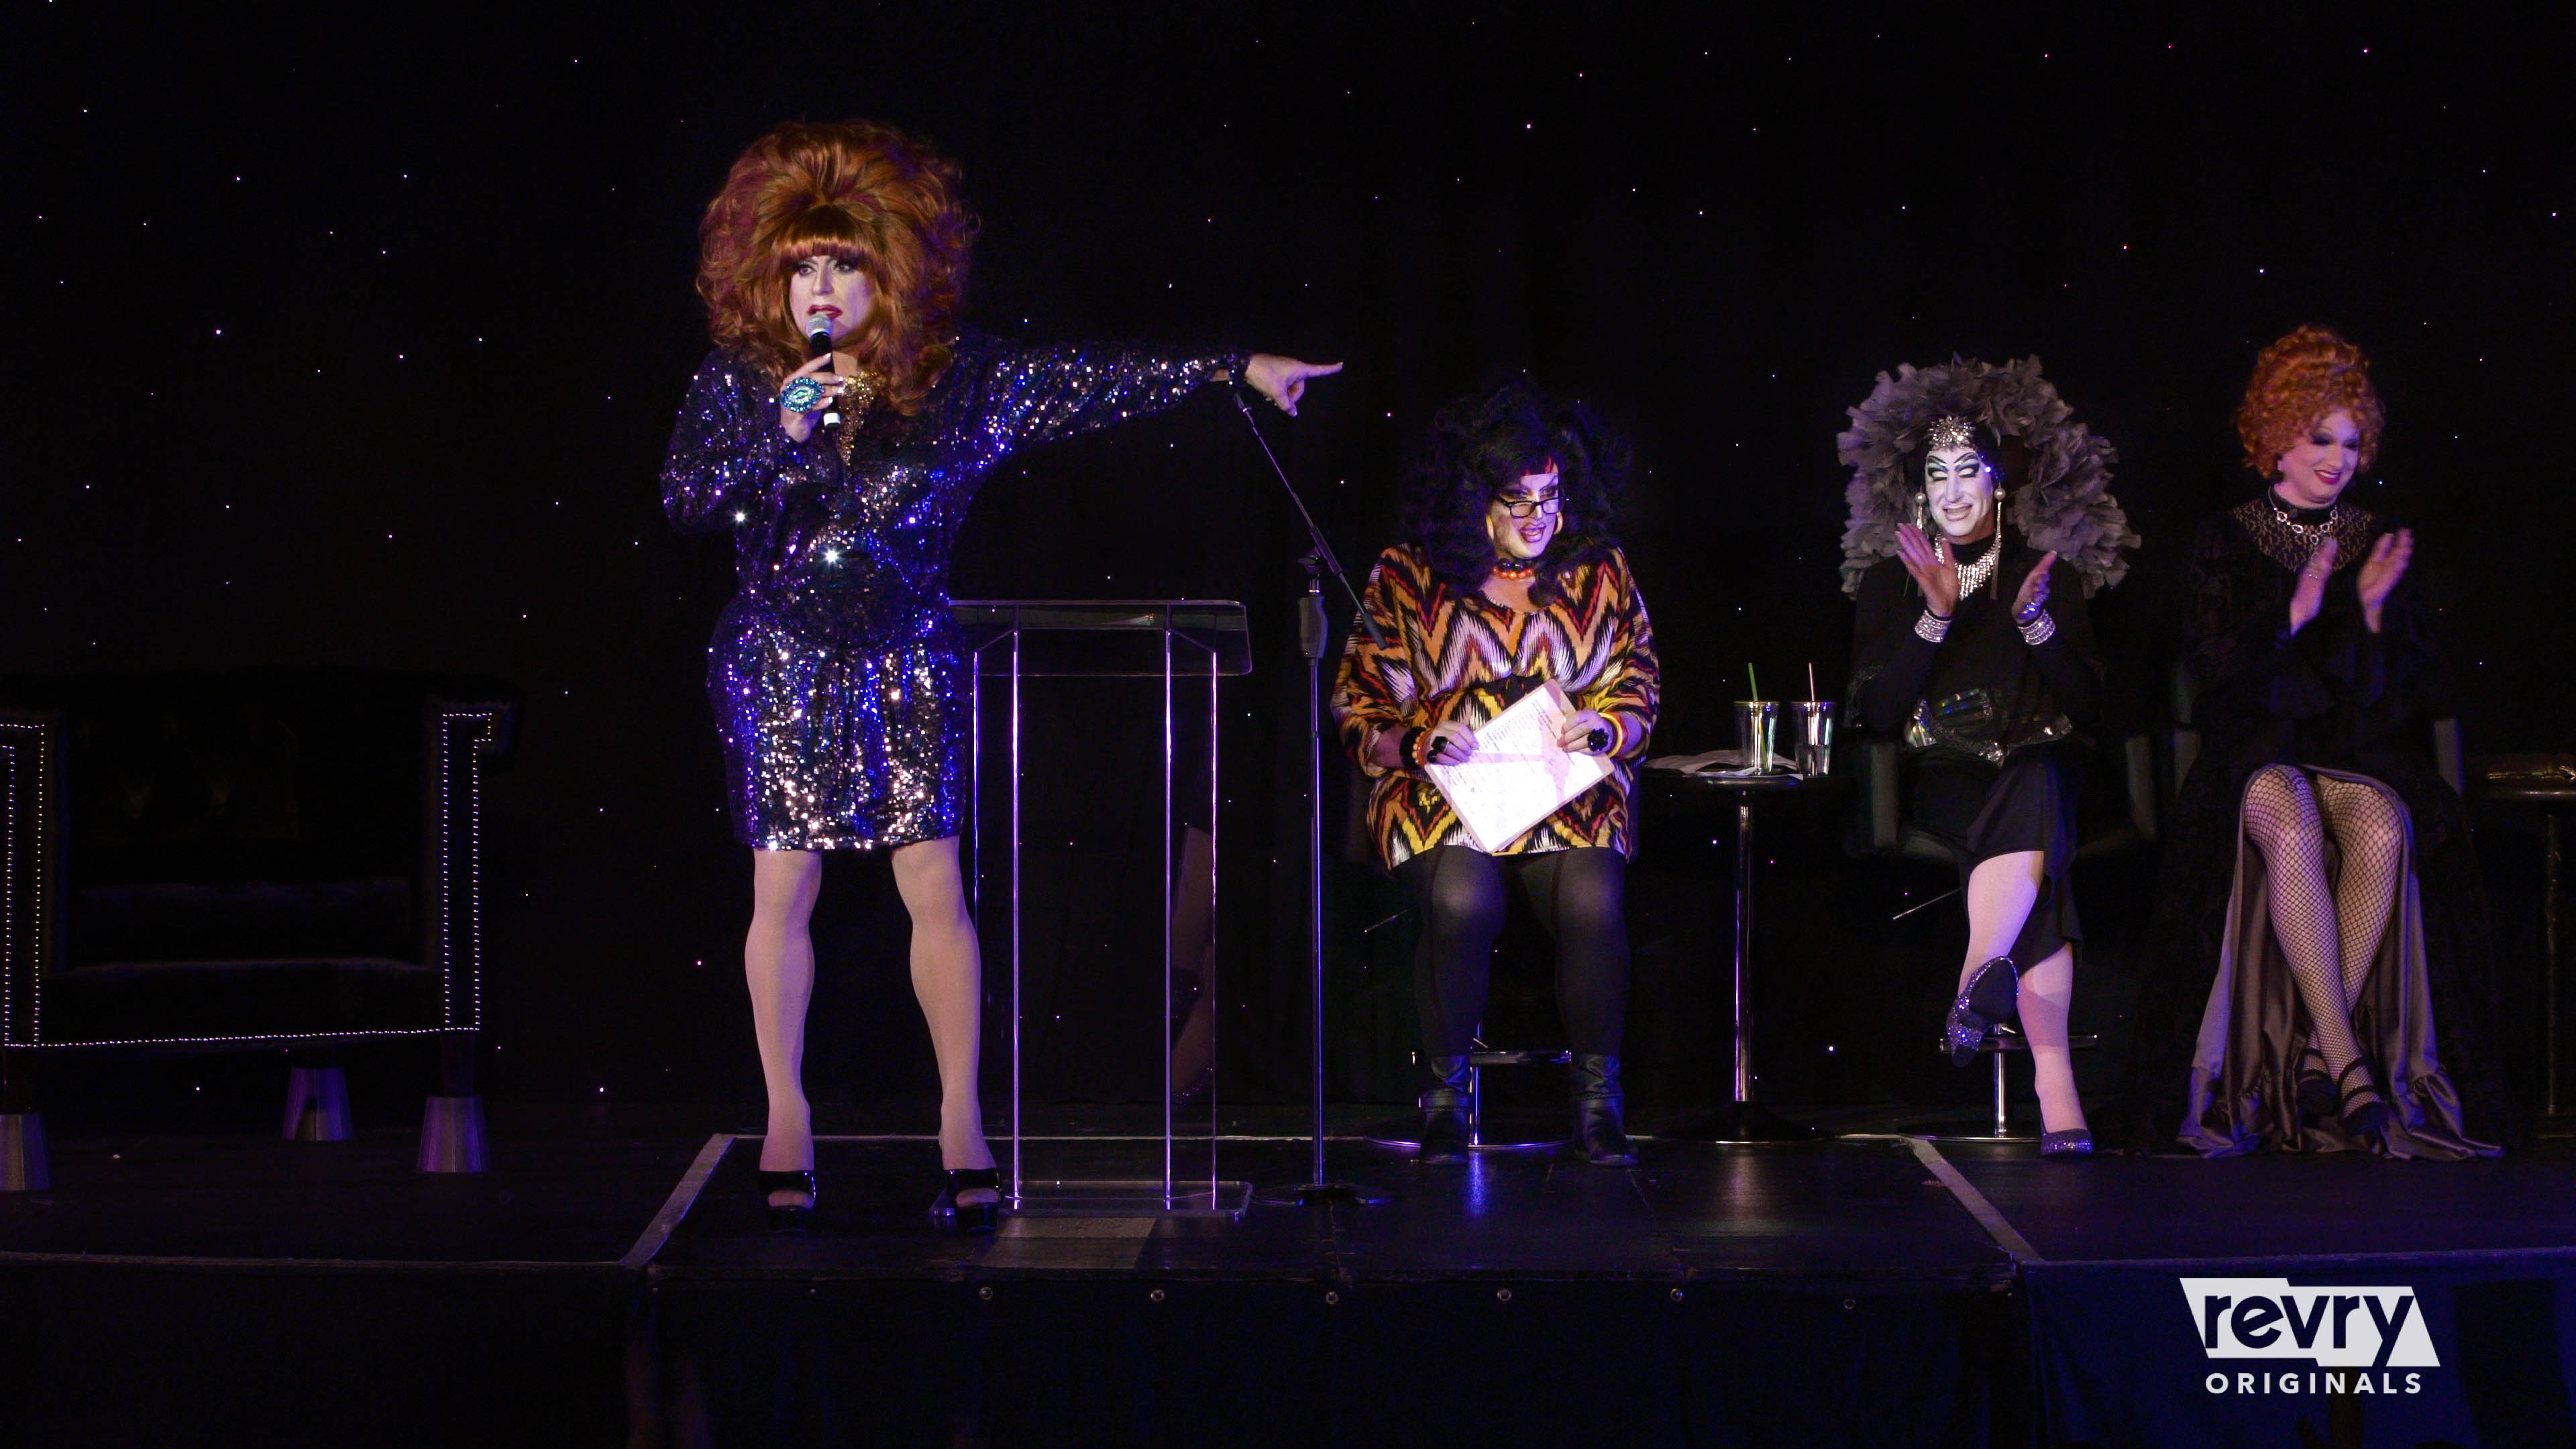 The Drag Roast of Heklina is out on Revry.tv Friday, February 1.